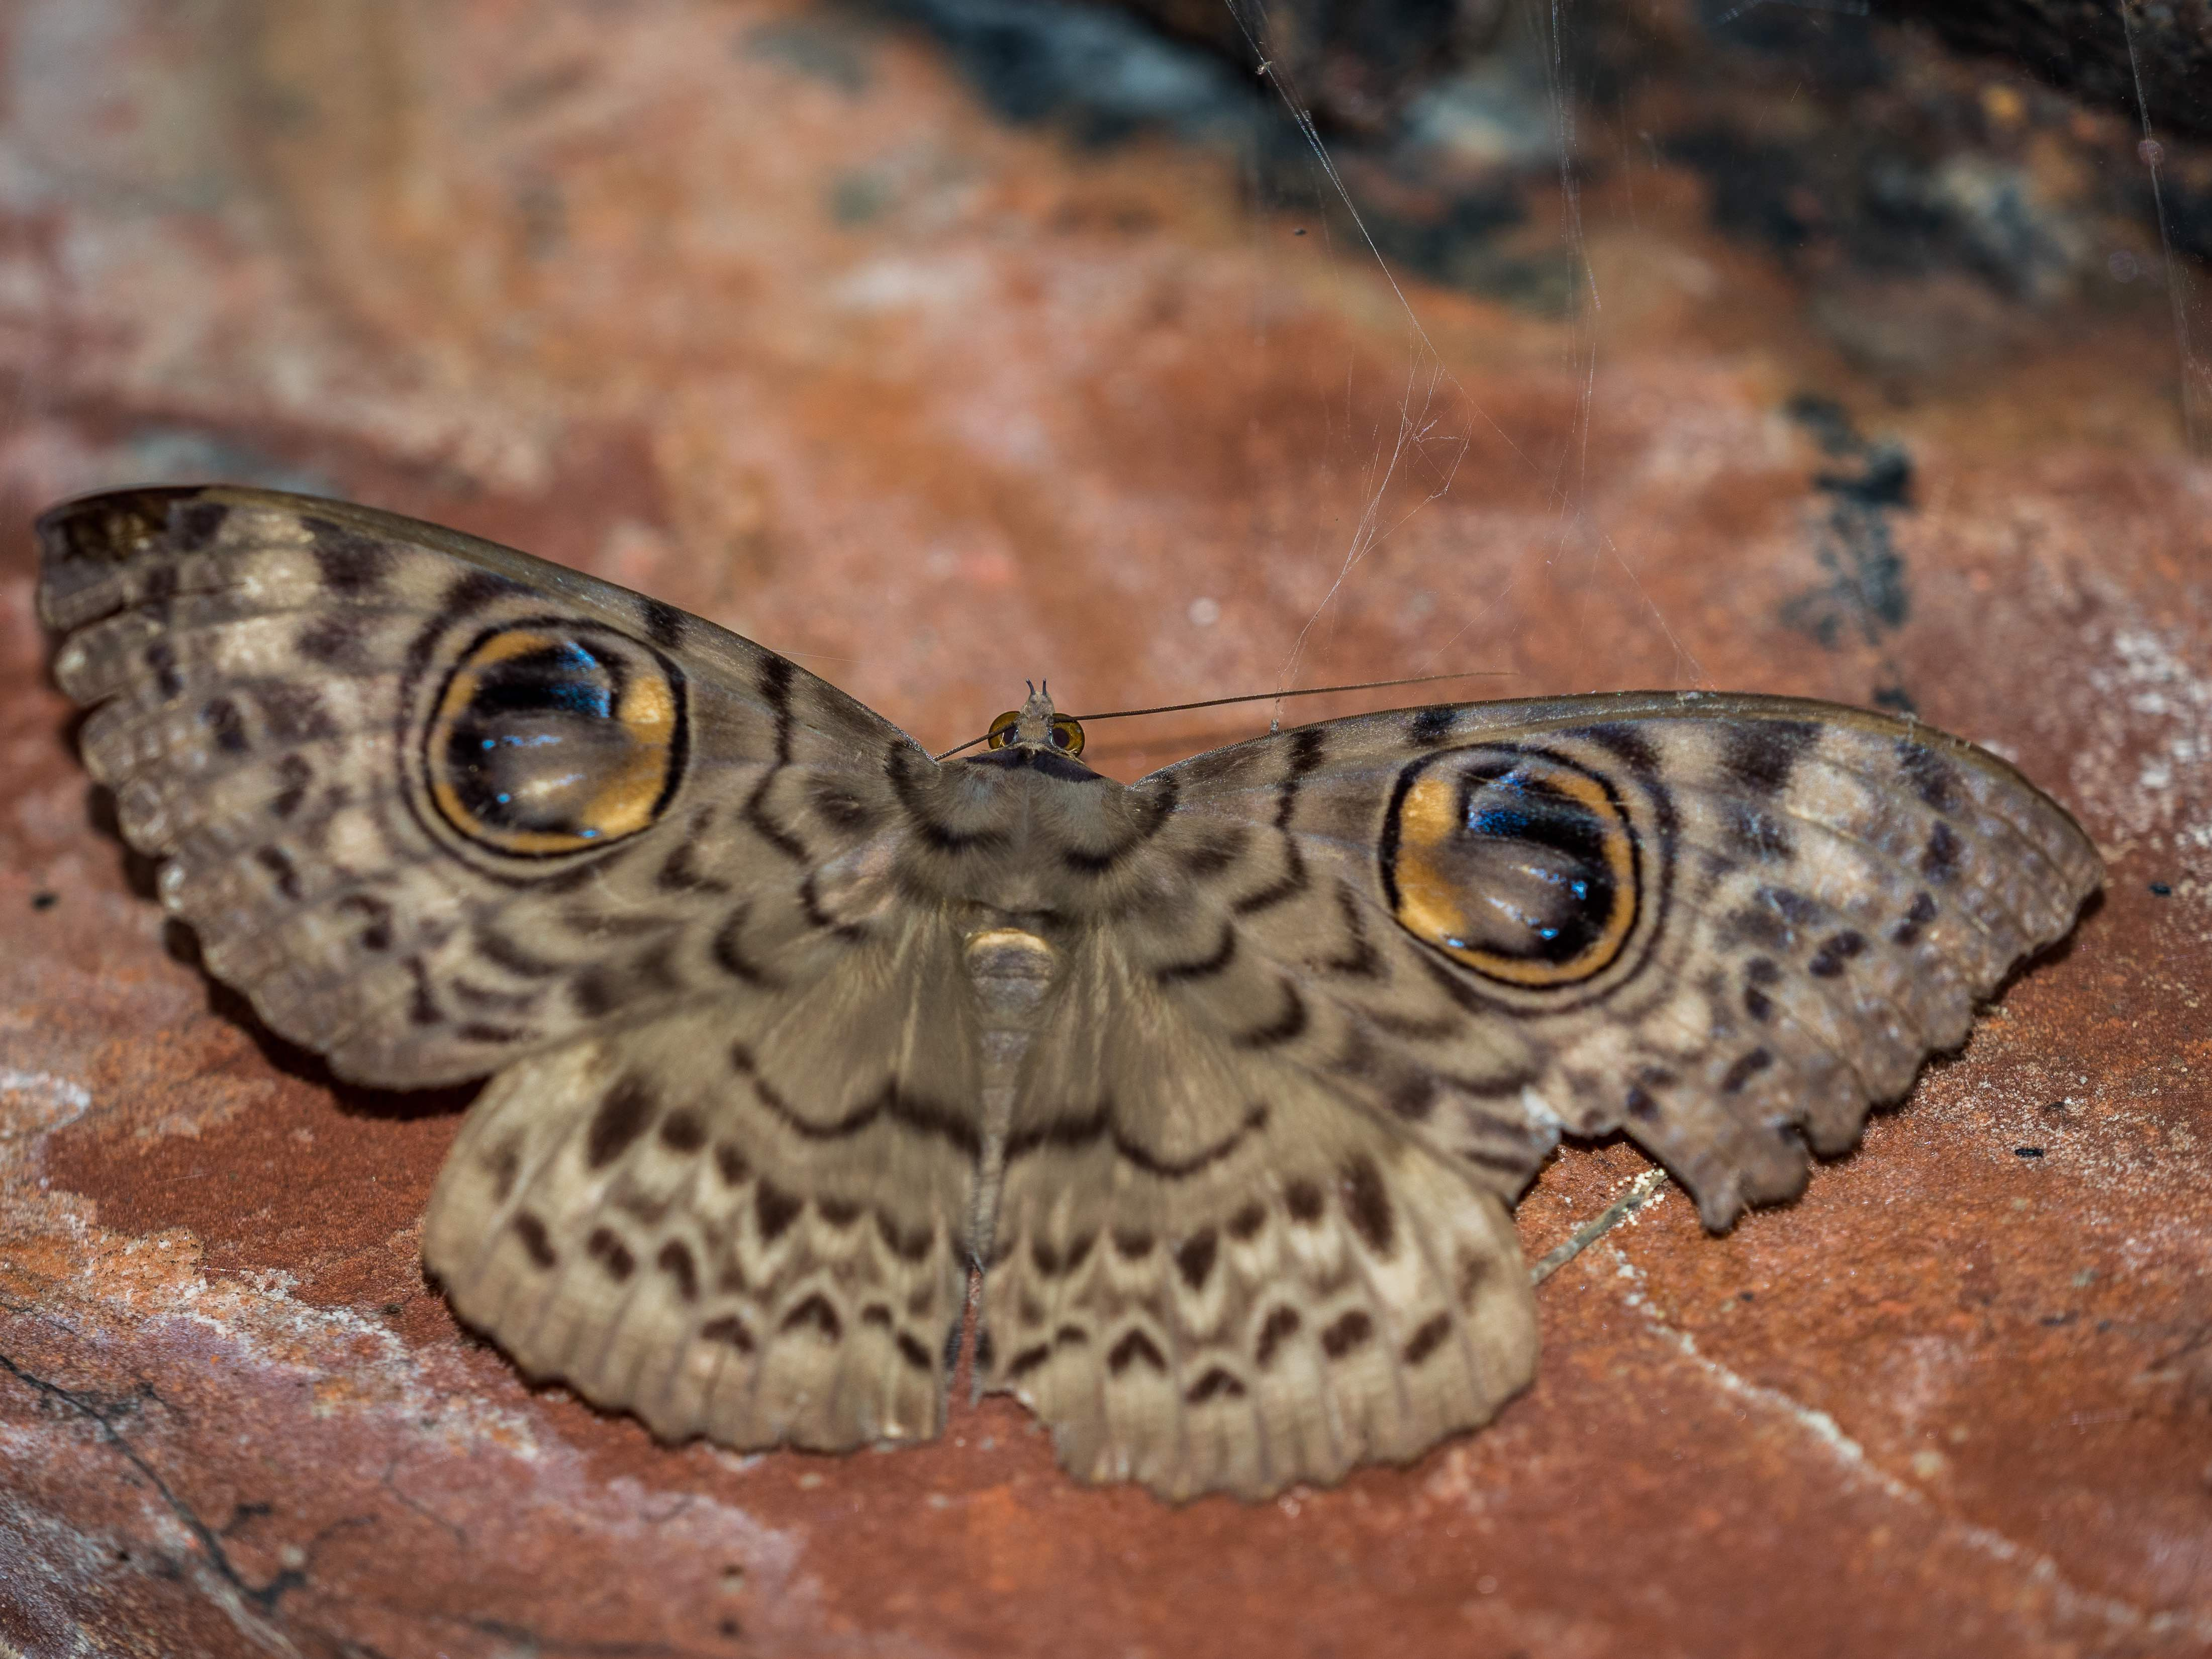 The owl moth has a striking pair of eye spots on its wings, ideal for scaring away predators.  (Cover) A captive audience of adults and children admire the insects attracted to the well-lit white screen they've gathered around at Asola-Bhatti Wildlife Sanctuary. Photos: Courtesy Conservation Education Centre